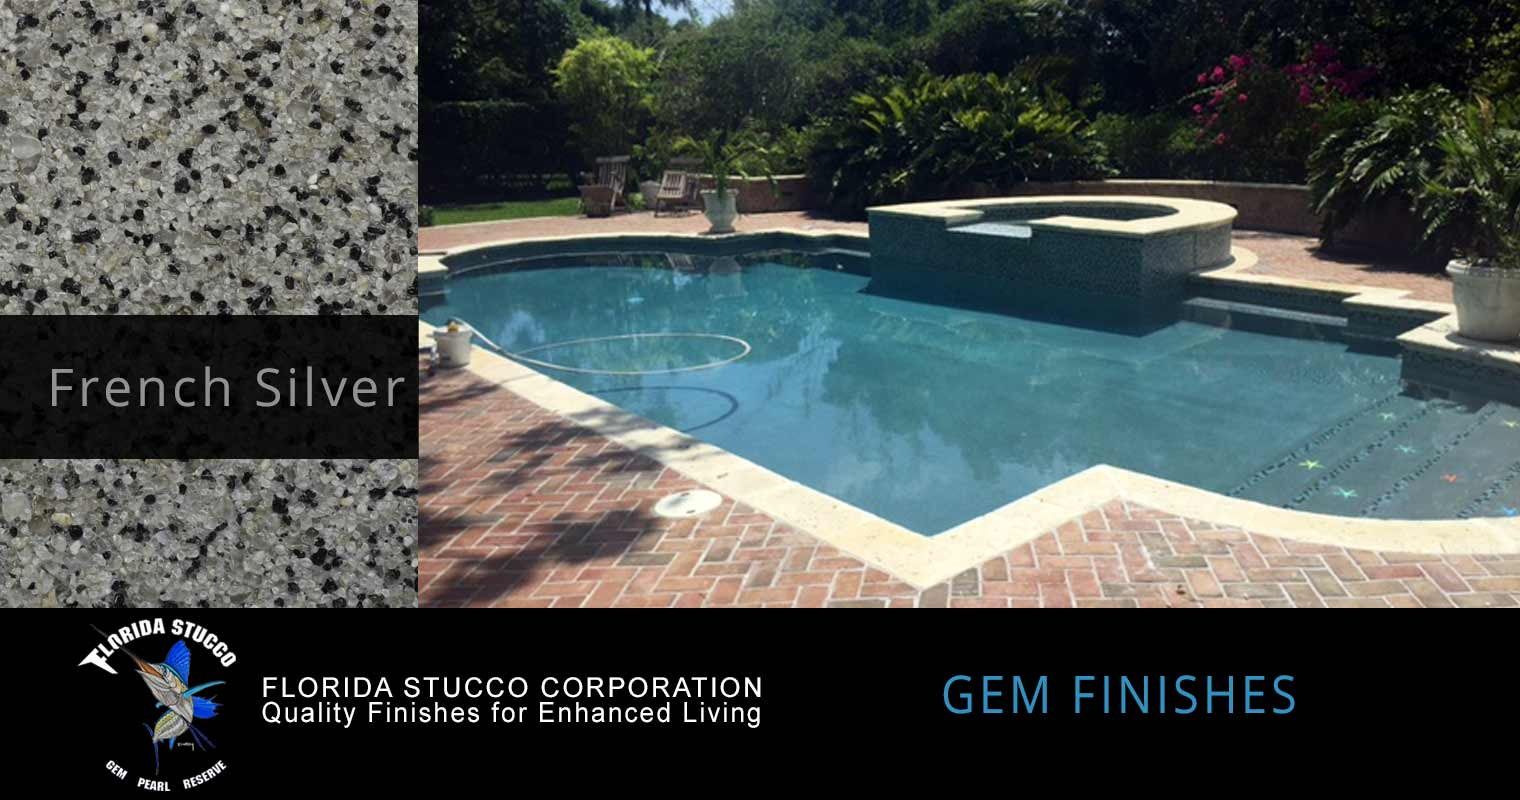 Florida Stucco - French Silver Plastering Finish Pool Sample 2